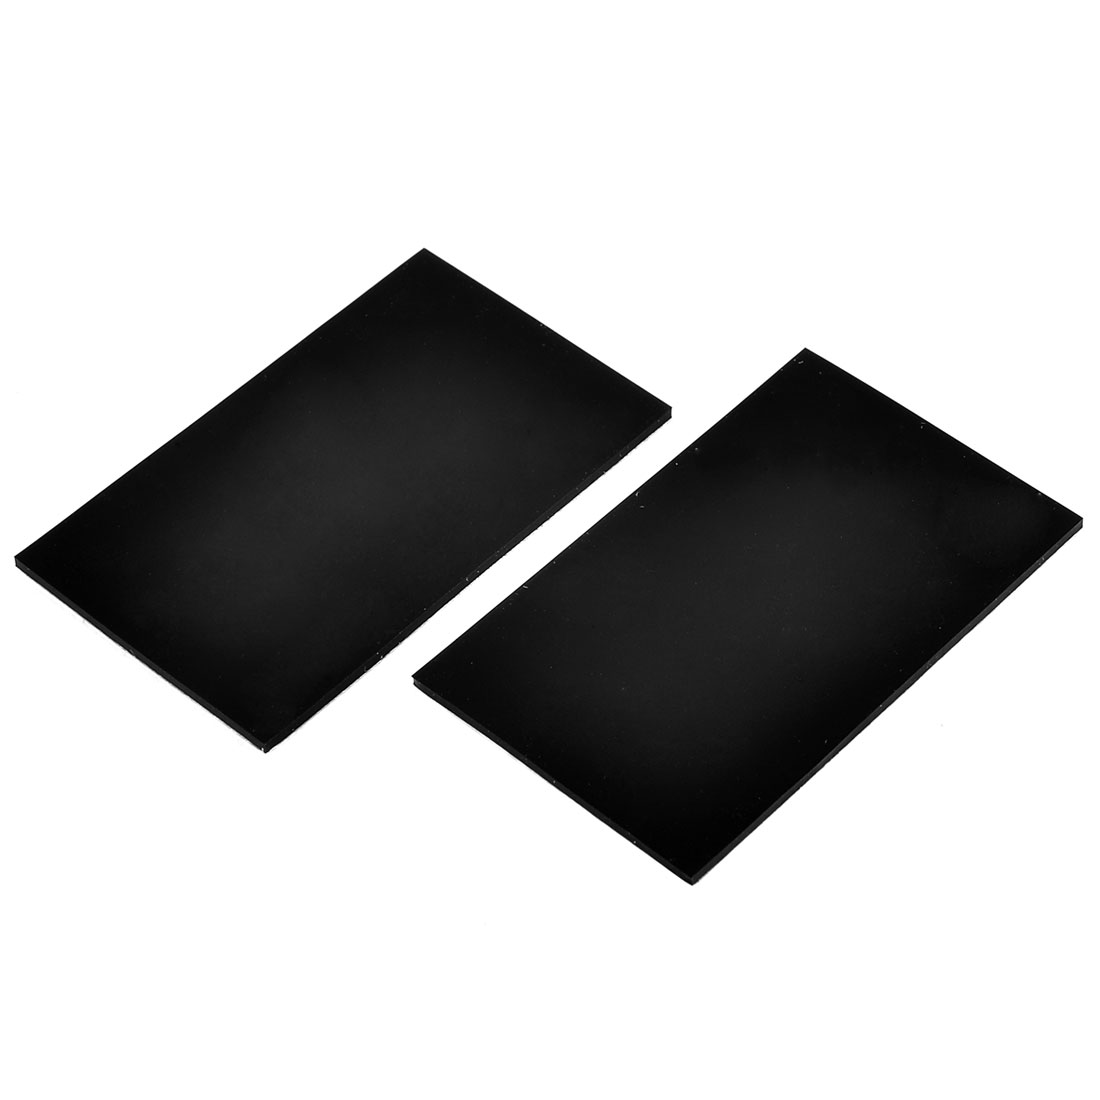 Silicone Square Design Furniture Nonslip Protector Pad Mat Black 2 Pcs